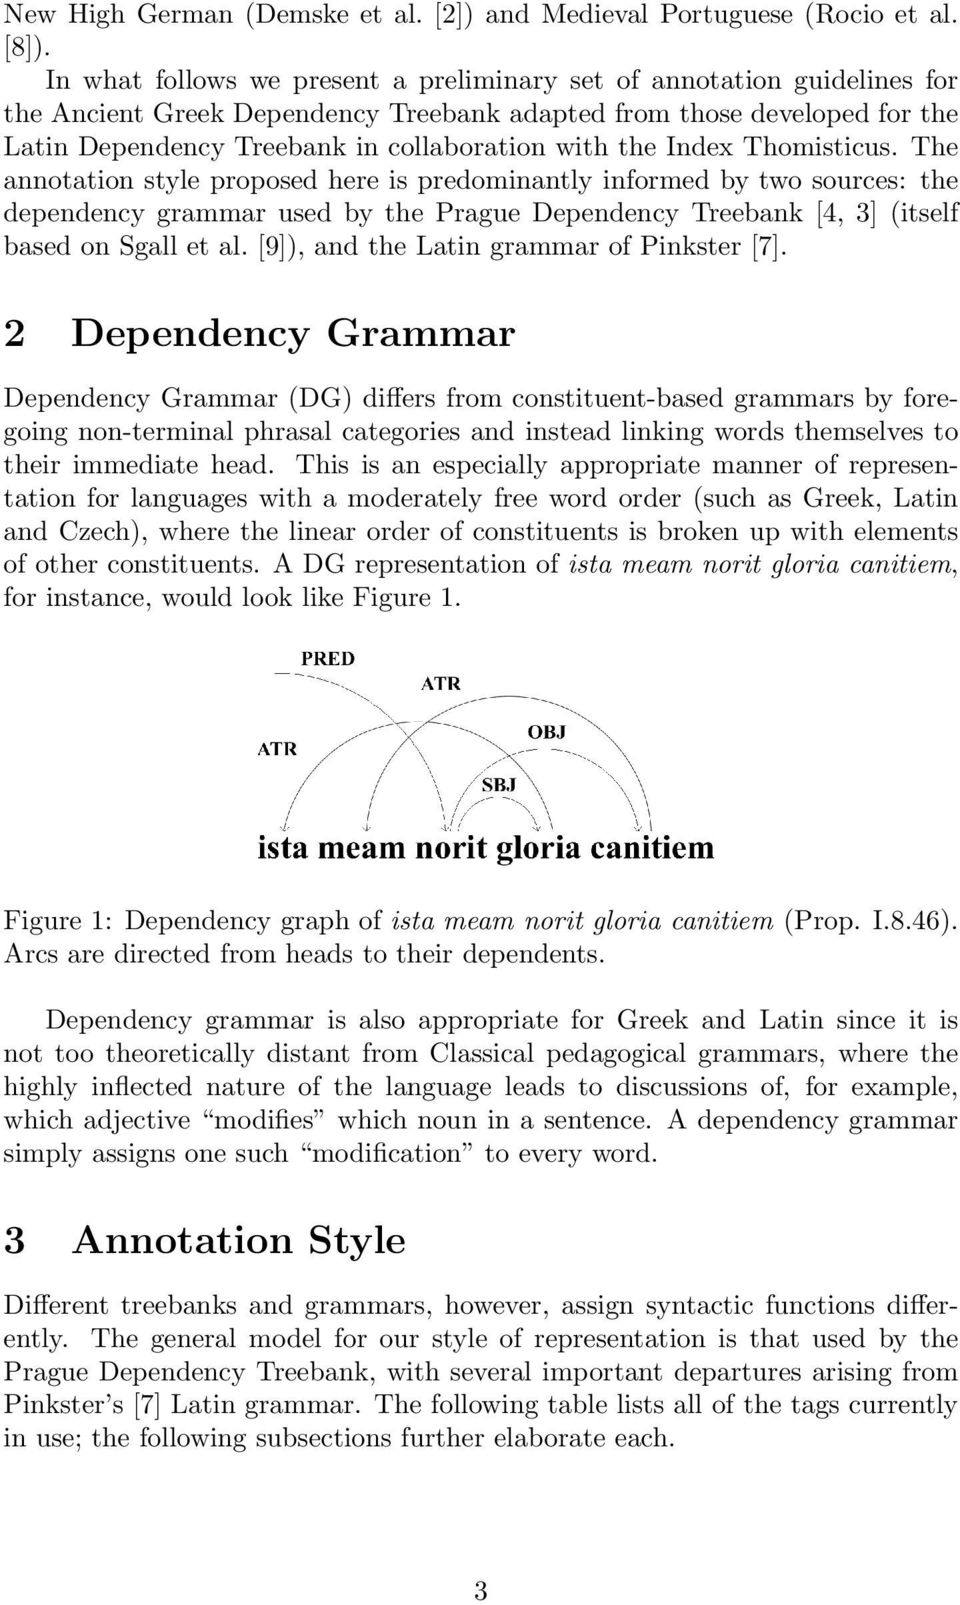 the Index Thomisticus. The annotation style proposed here is predominantly informed by two sources: the dependency grammar used by the Prague Dependency Treebank [4, 3] (itself based on Sgall et al.